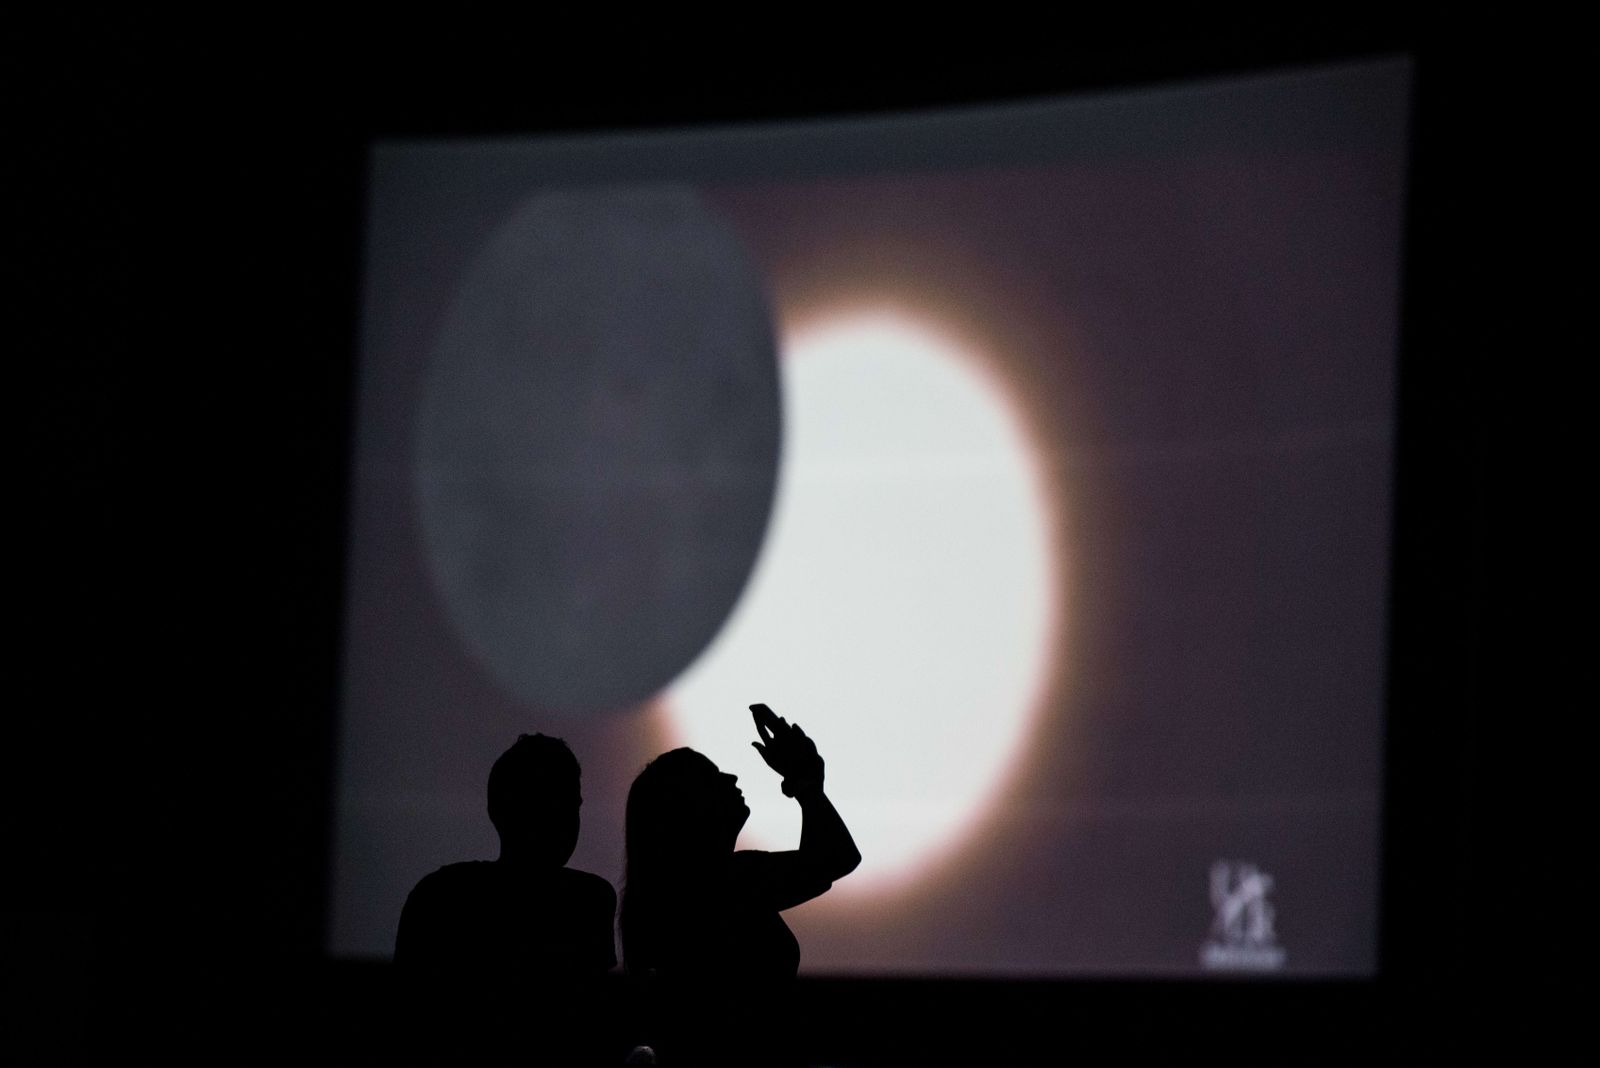 US-TOURISTS-FLOCK-TO-SOUTH-CAROLINA-TO-SEE-MONDAYS-ECLIPSE-IN-F